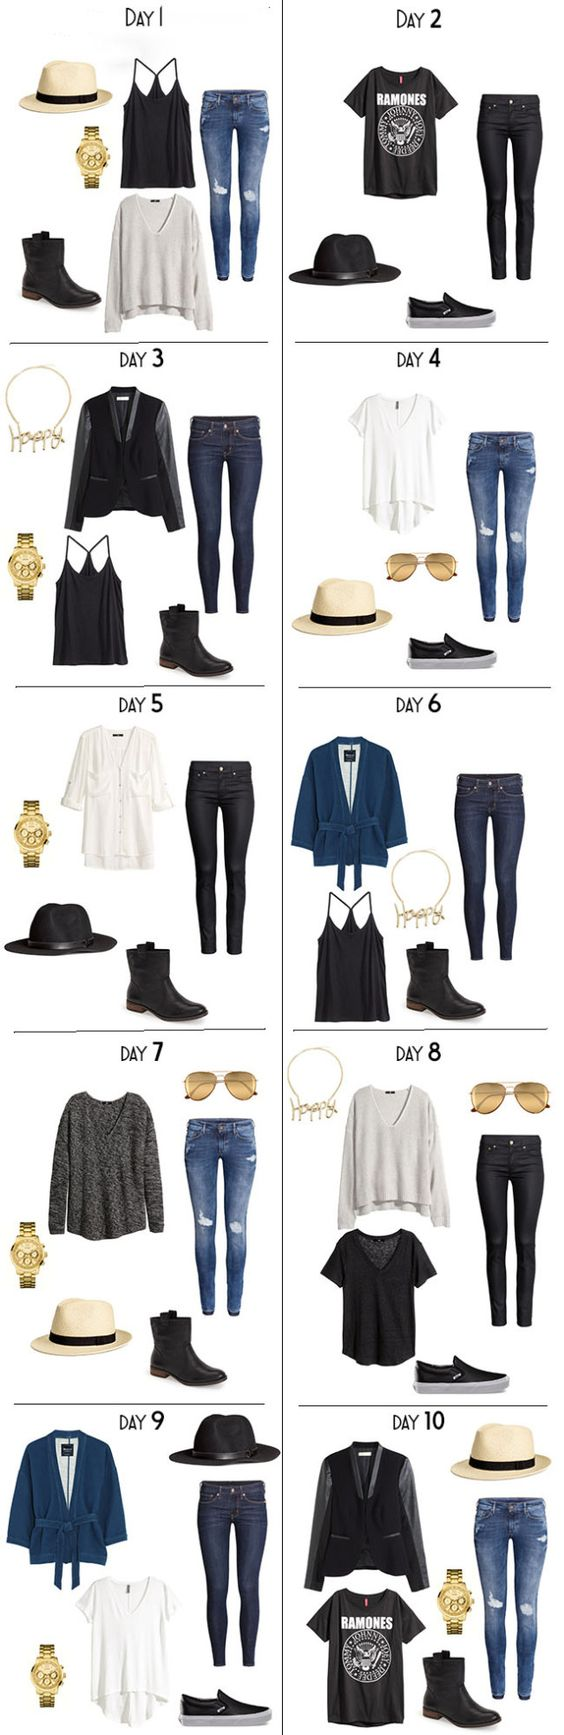 10 Days Days worth of outfits for a fall vacation packing list. The entire list is on the blog. #packinglist #packinglight #travellight #travelwardrobe: